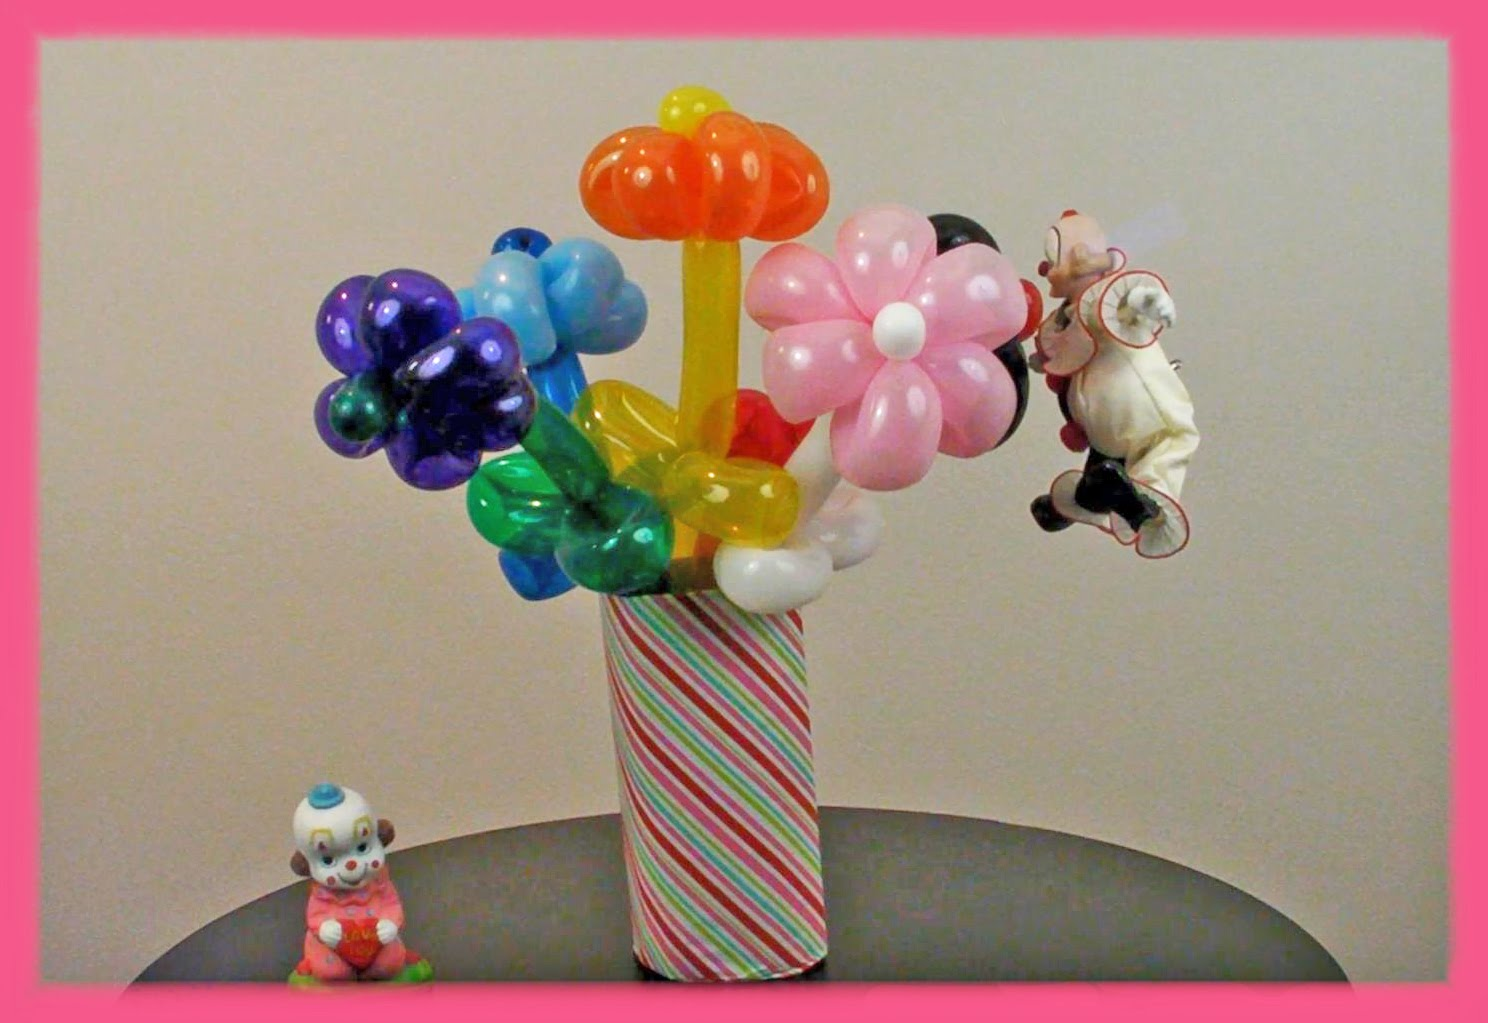 How to make balloon flowers 15 marvelous ways guide patterns balloon flower bouquet izmirmasajfo Choice Image